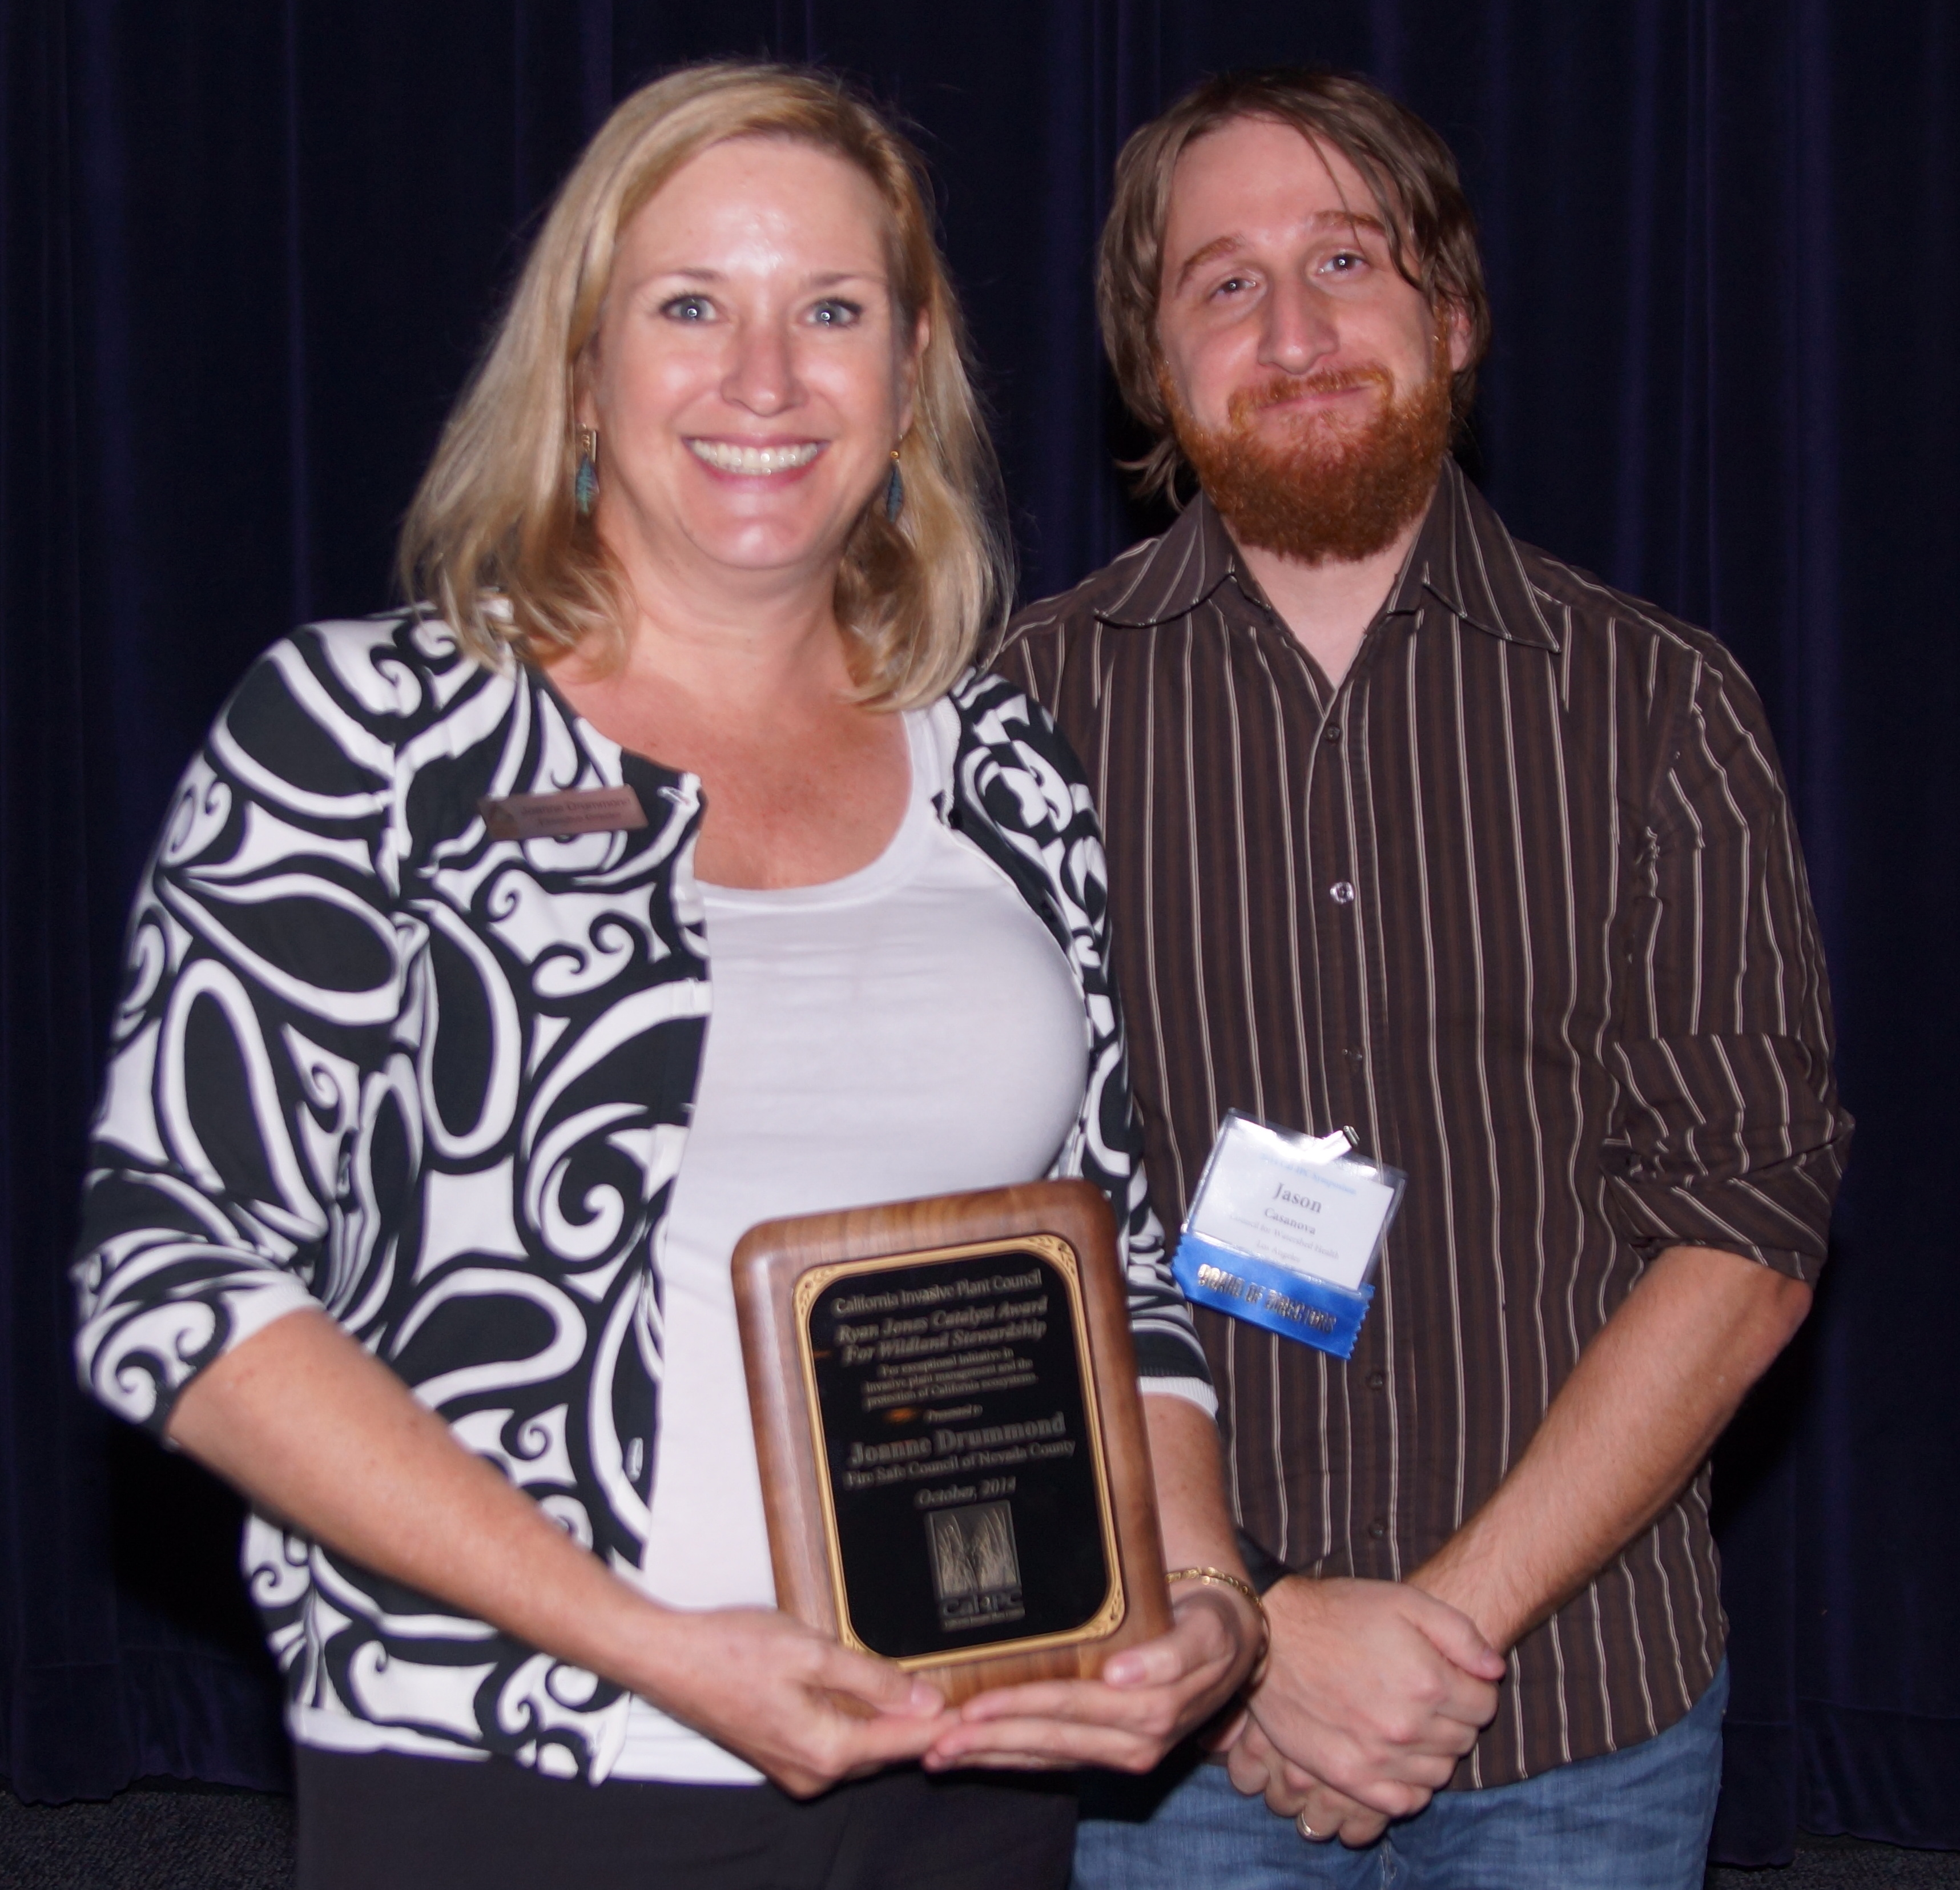 Joanne Drummond received the 2014 Ryan Jones Catalyst Award.